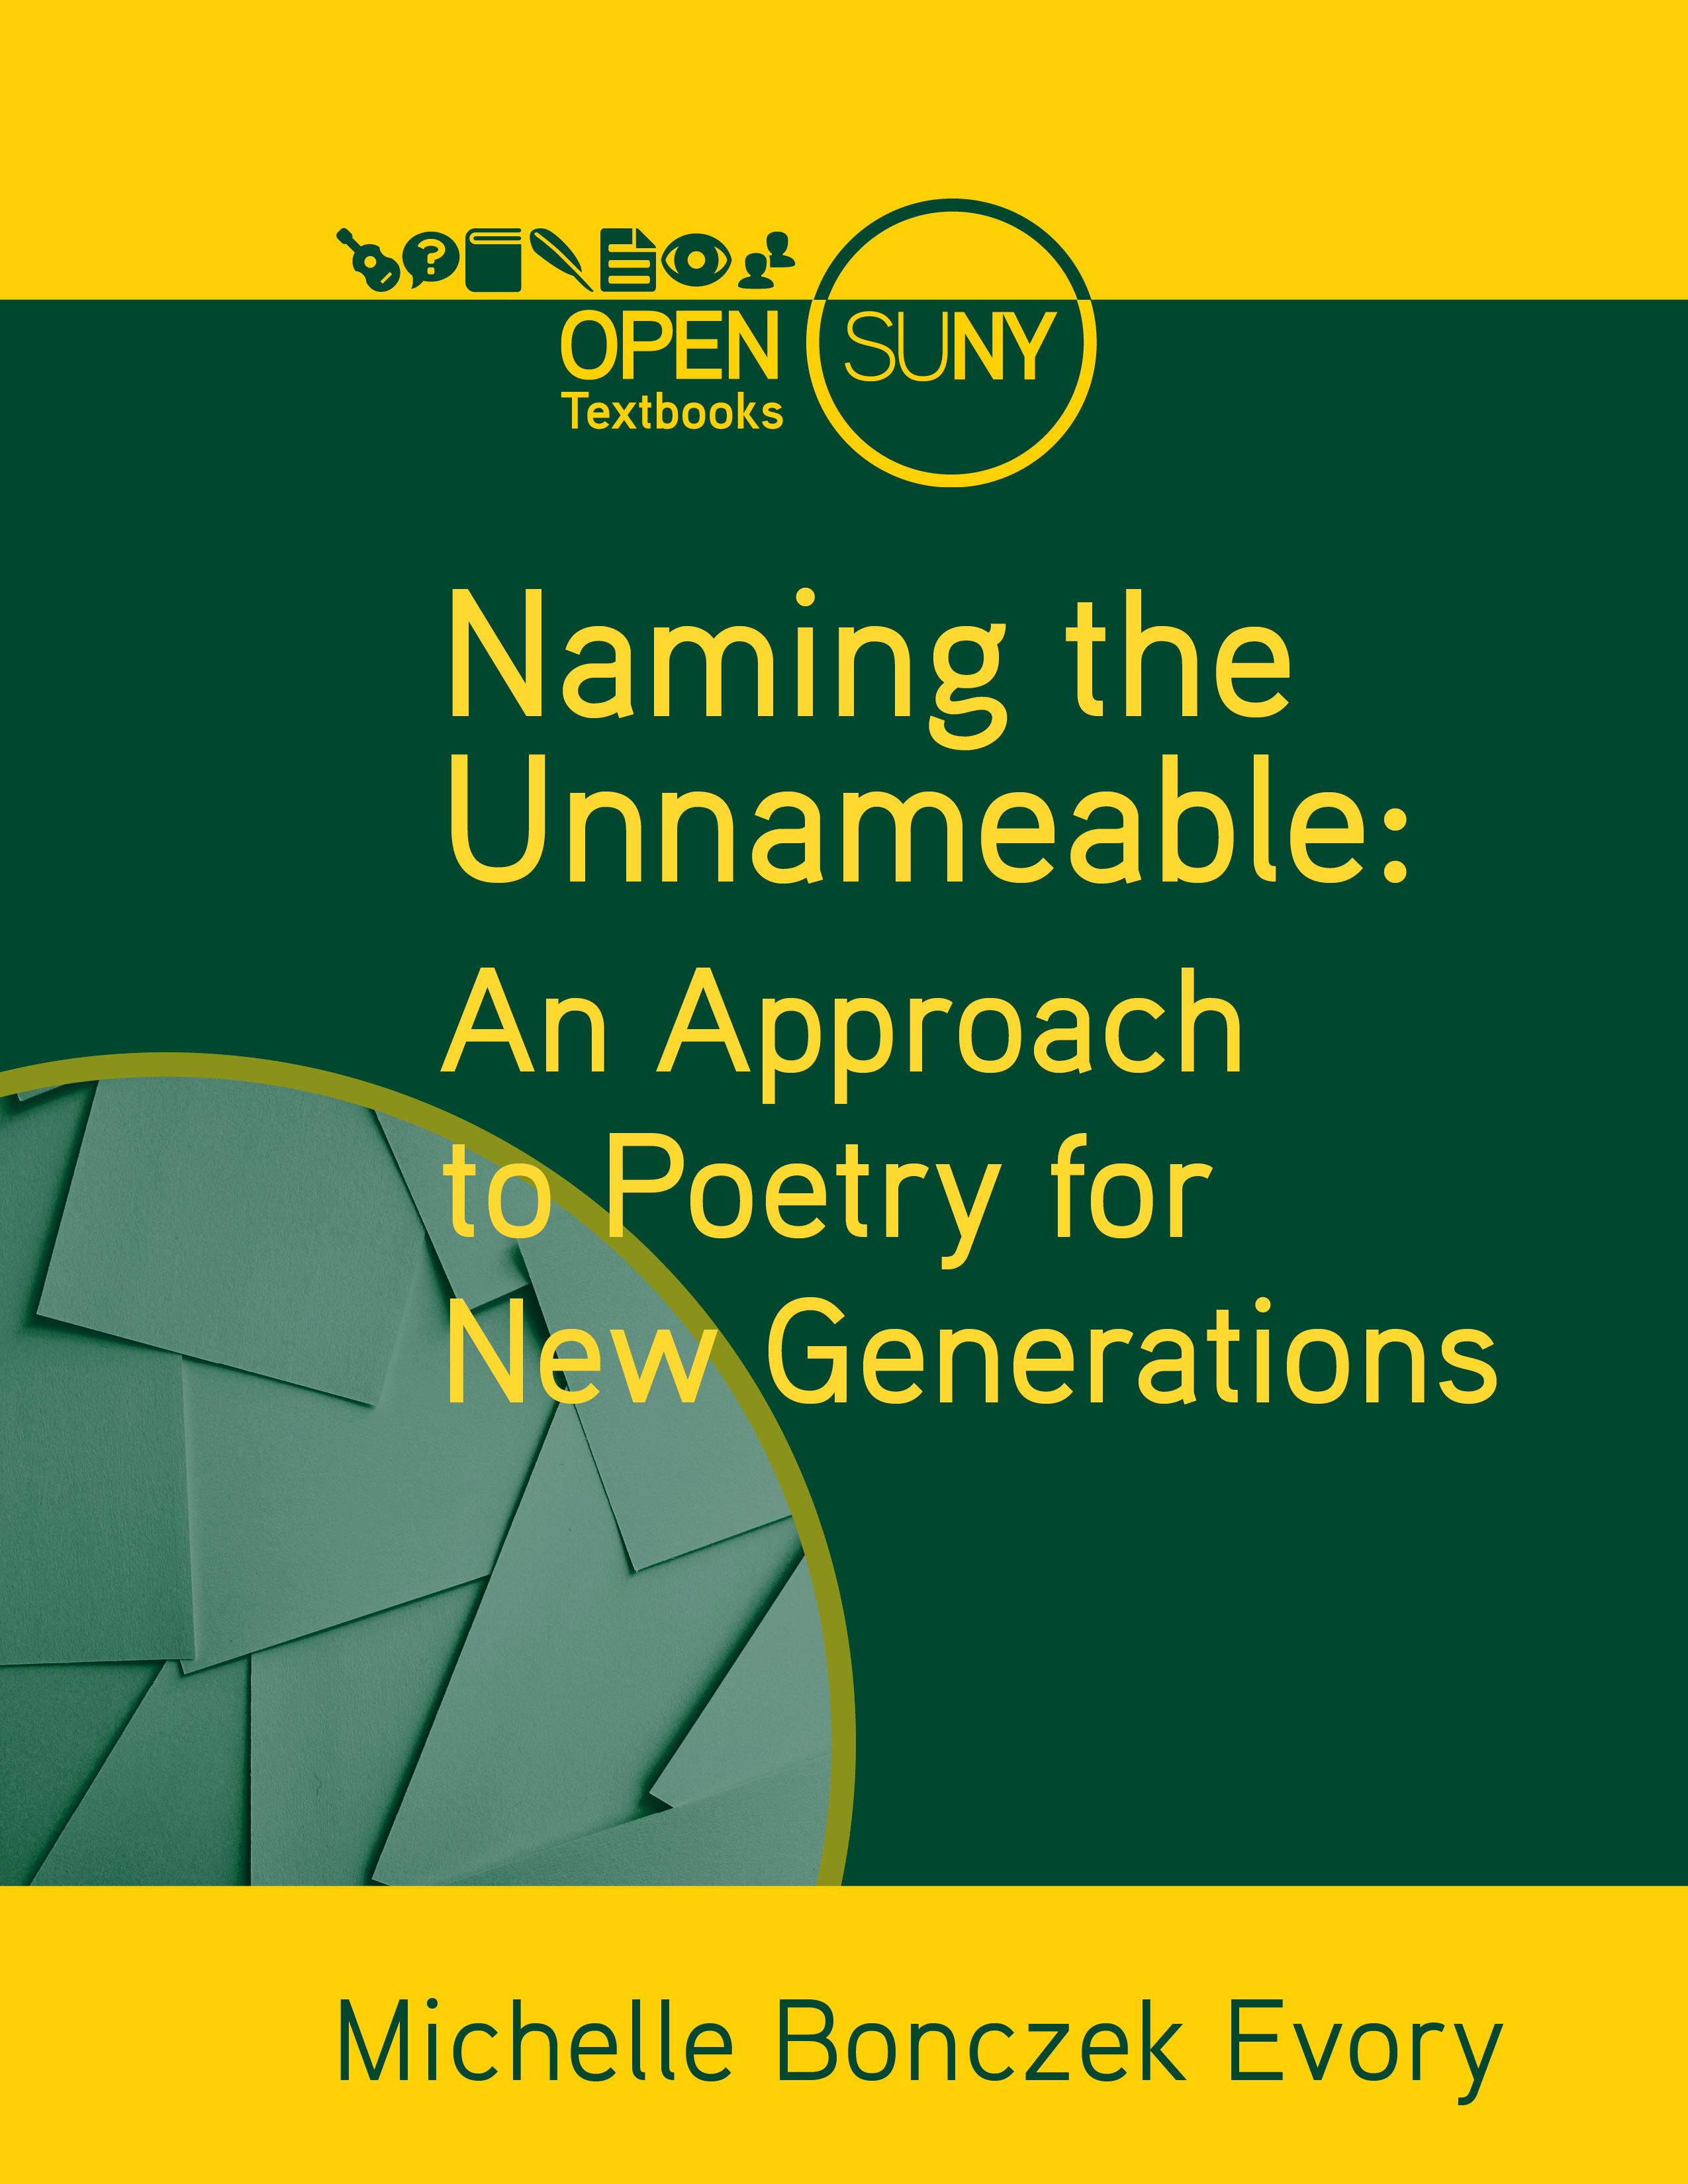 Cover image for Naming the Unnameable: An Approach to Poetry for New Generations